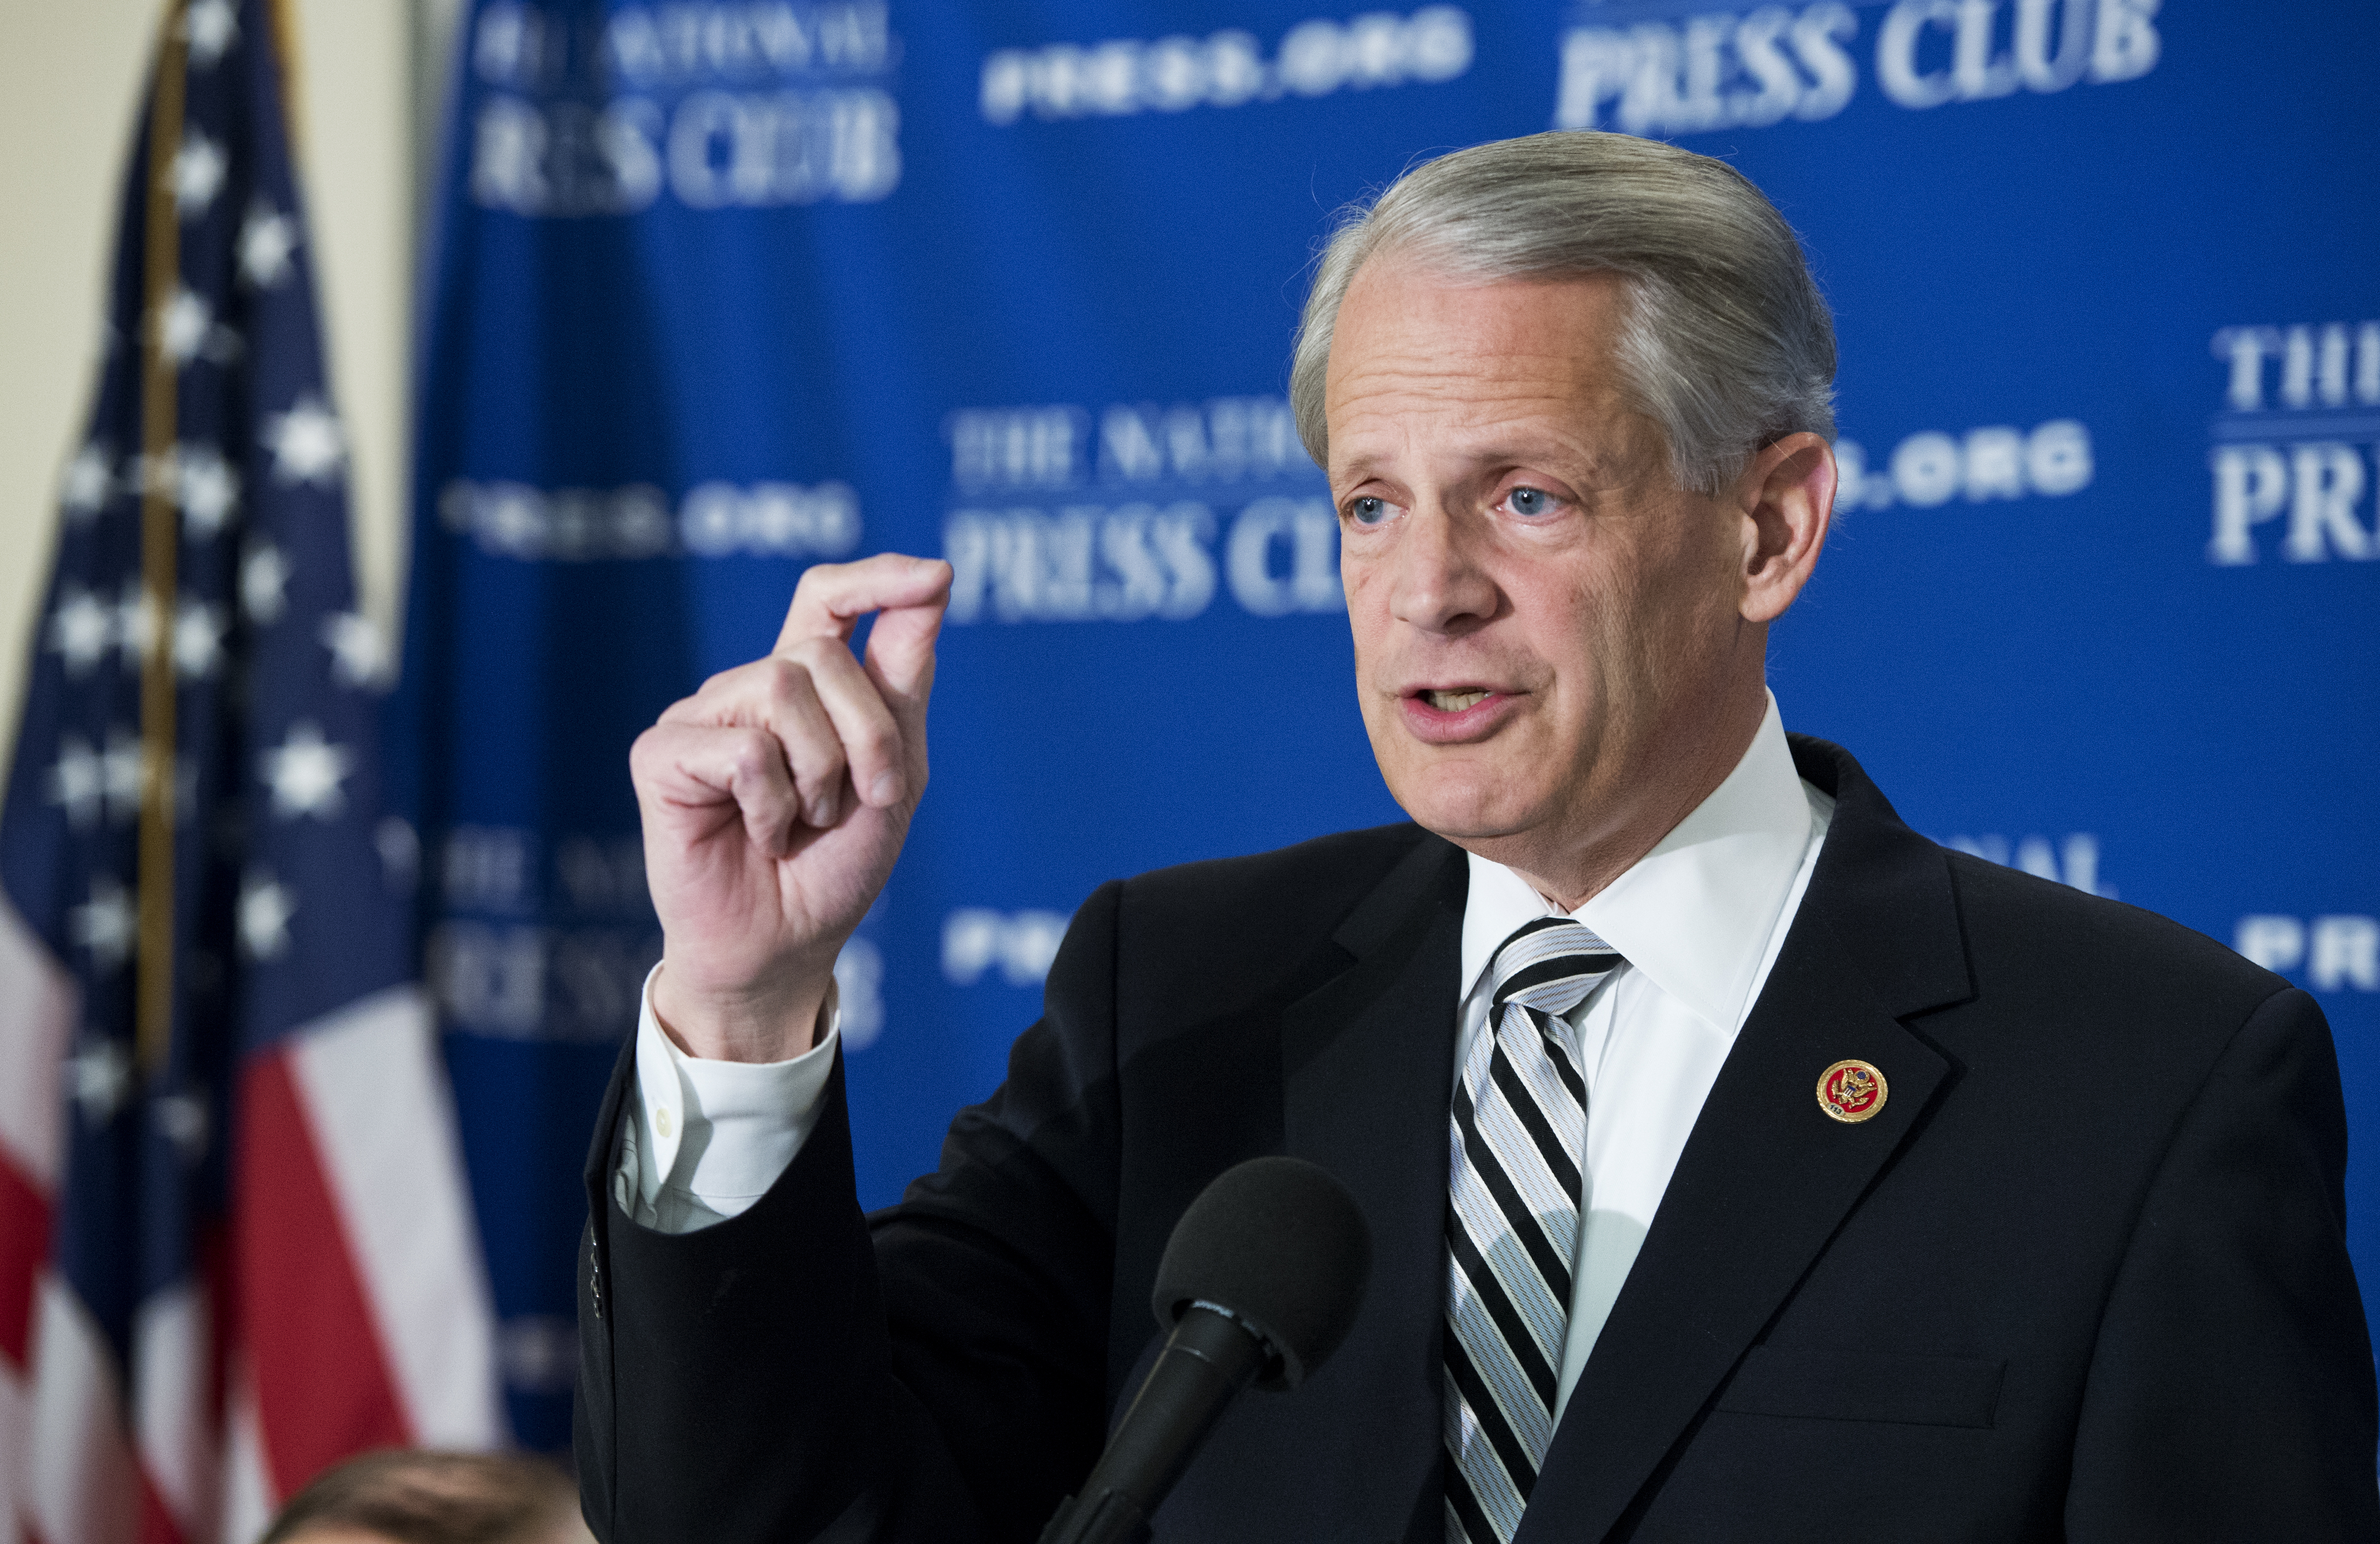 Rep. Steve Israel, D-N.Y., chairman of the DCCC, speaks at the National Press Club's Newsmaker series on how Rep. Paul Ryan's, R-Wis., budget will effect the midterm elections on April 2, 2014.